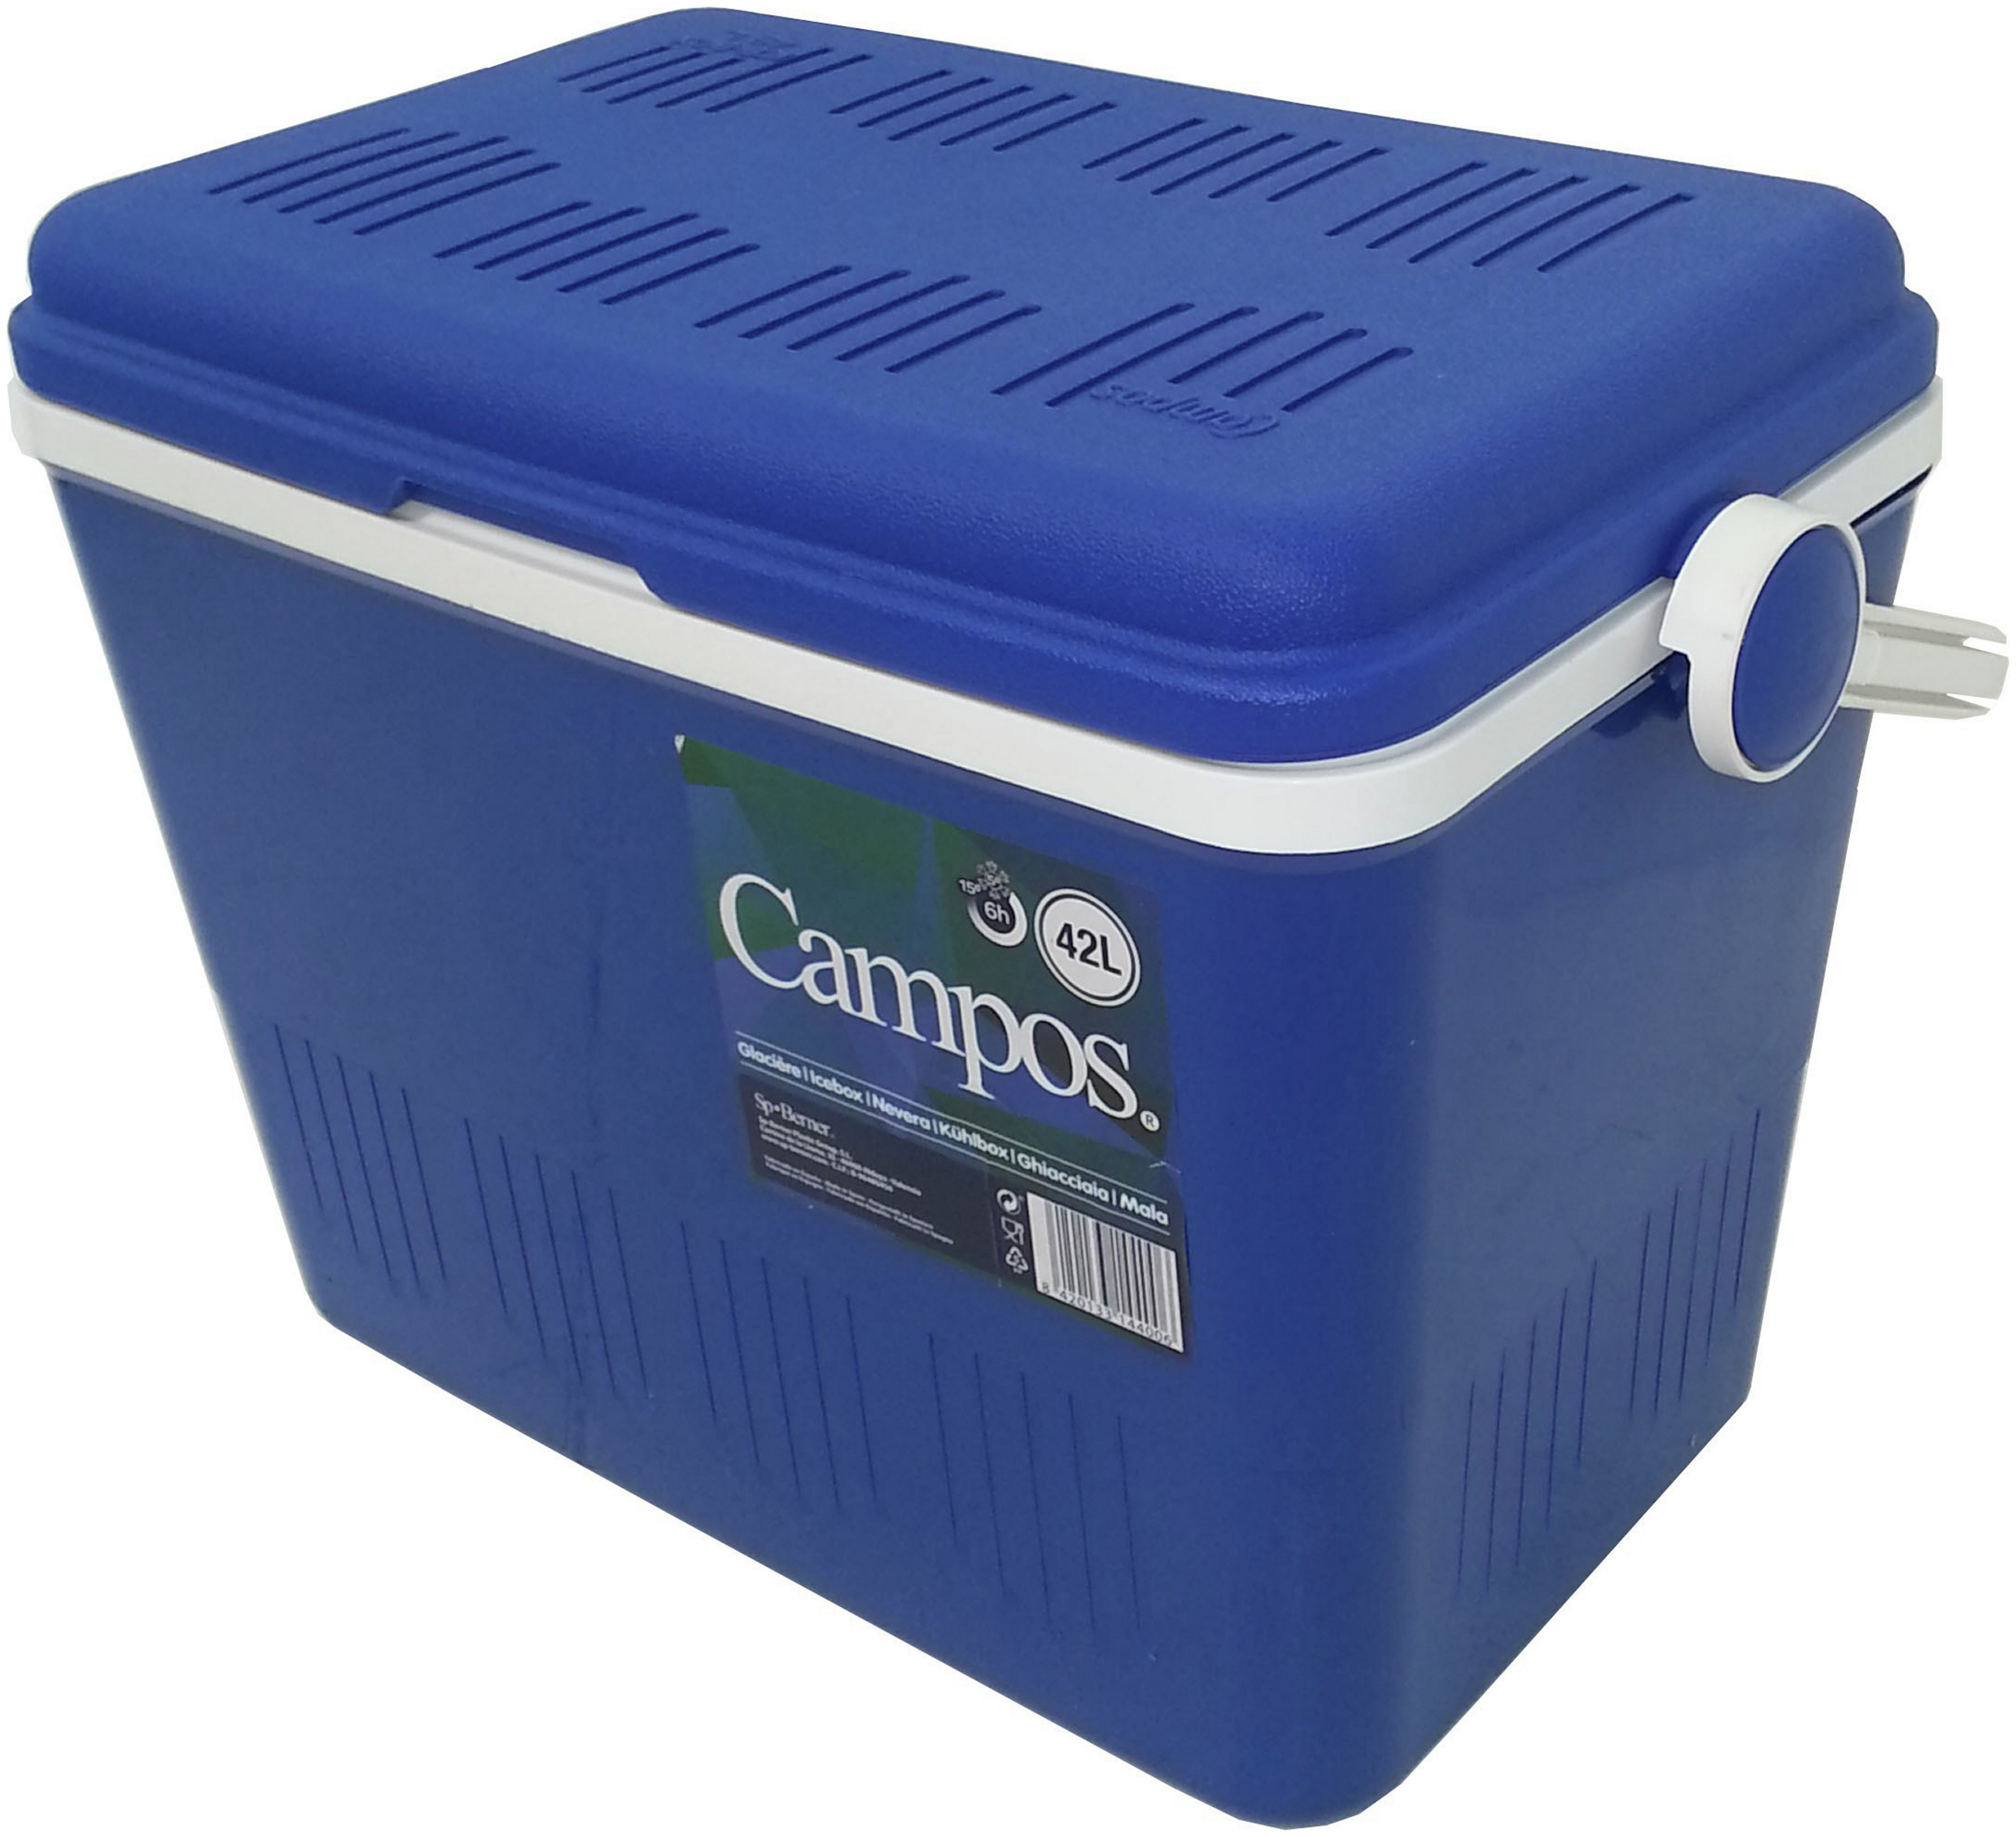 Image of Large Cool Box - 42 Litre